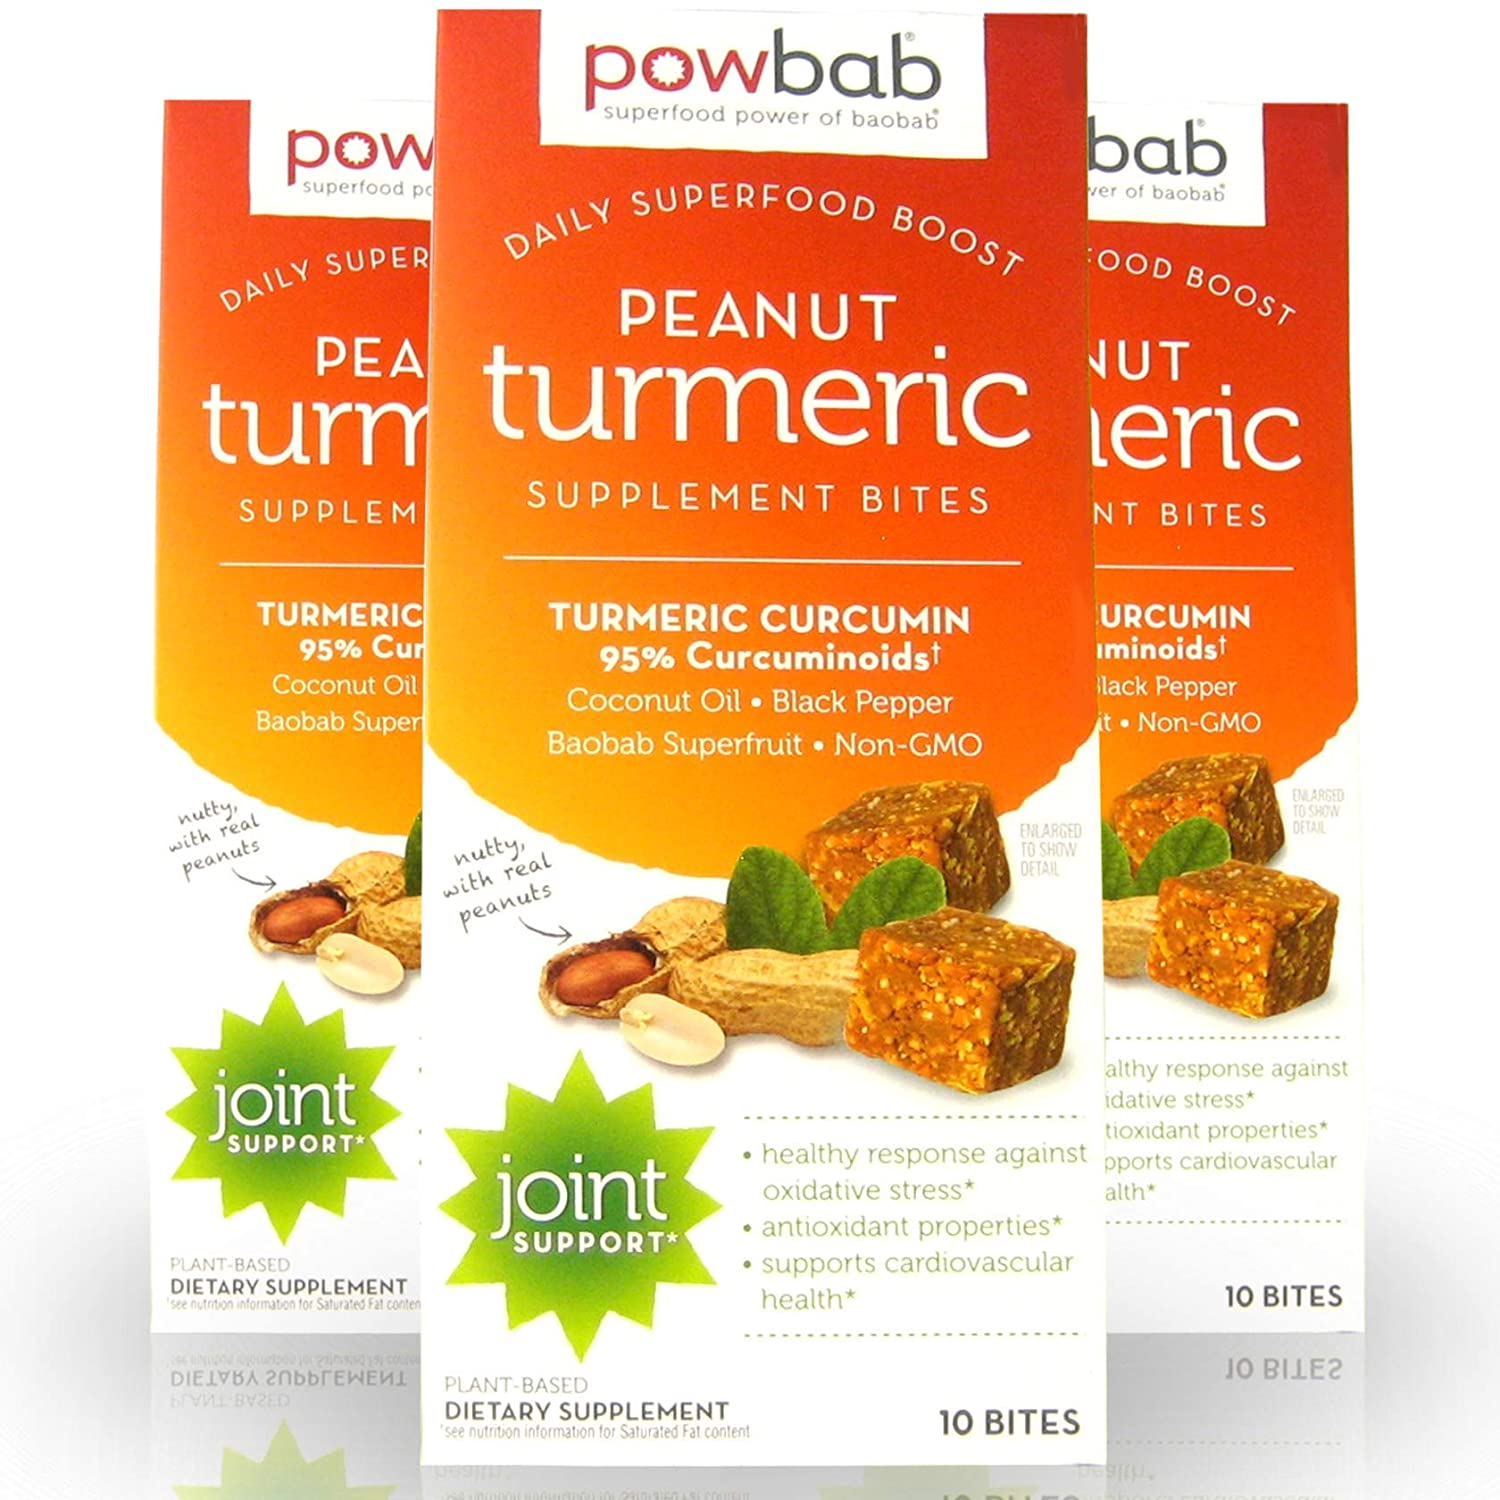 powbab Peanut Turmeric Supplement Bites with Organic Curcumin, Black Pepper, Coconut Oil, Baobab Enhanced Absorption. Natural Joint Relief, Inflammation Antioxidant. Real Superfood, 10Count (3 Pack)